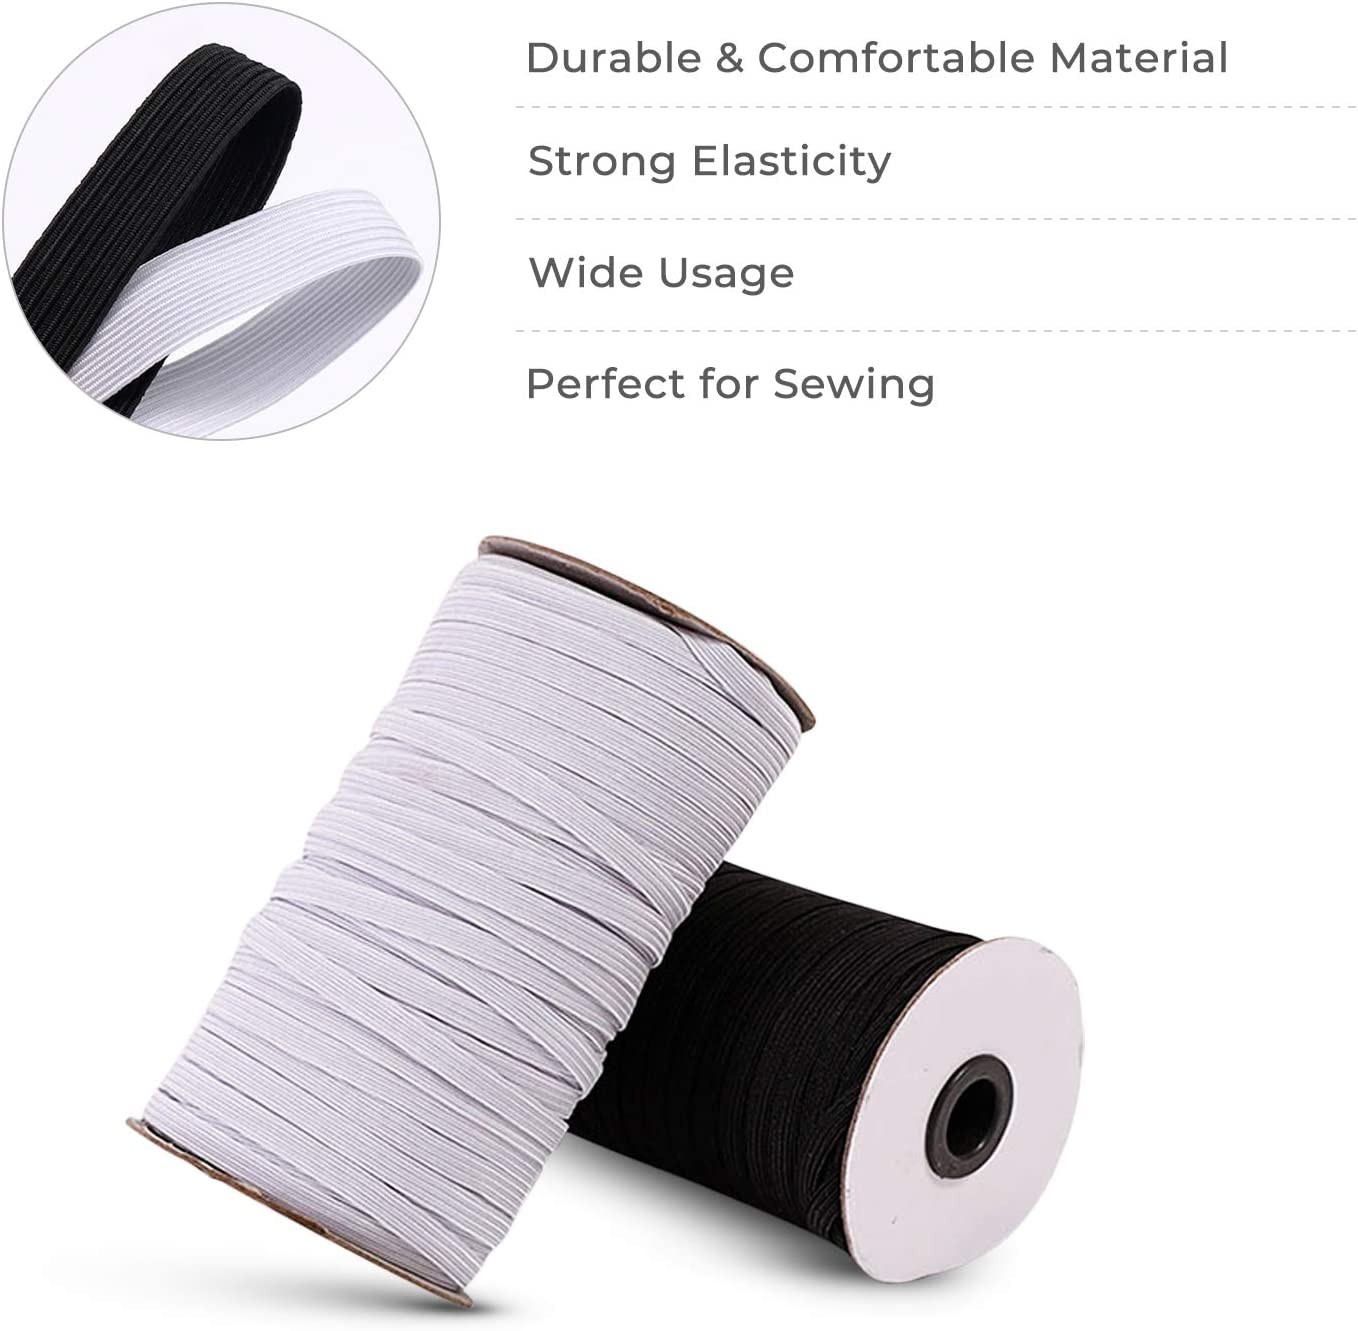 100 Yards Elastic Band for Sewing 1//2 inch Black Strap Sewing Craft DIY Mask and Bedspread Cuff Flex Fabrics Cord Bungee for Handmade Making High Elasticity Braided Elastic Rope